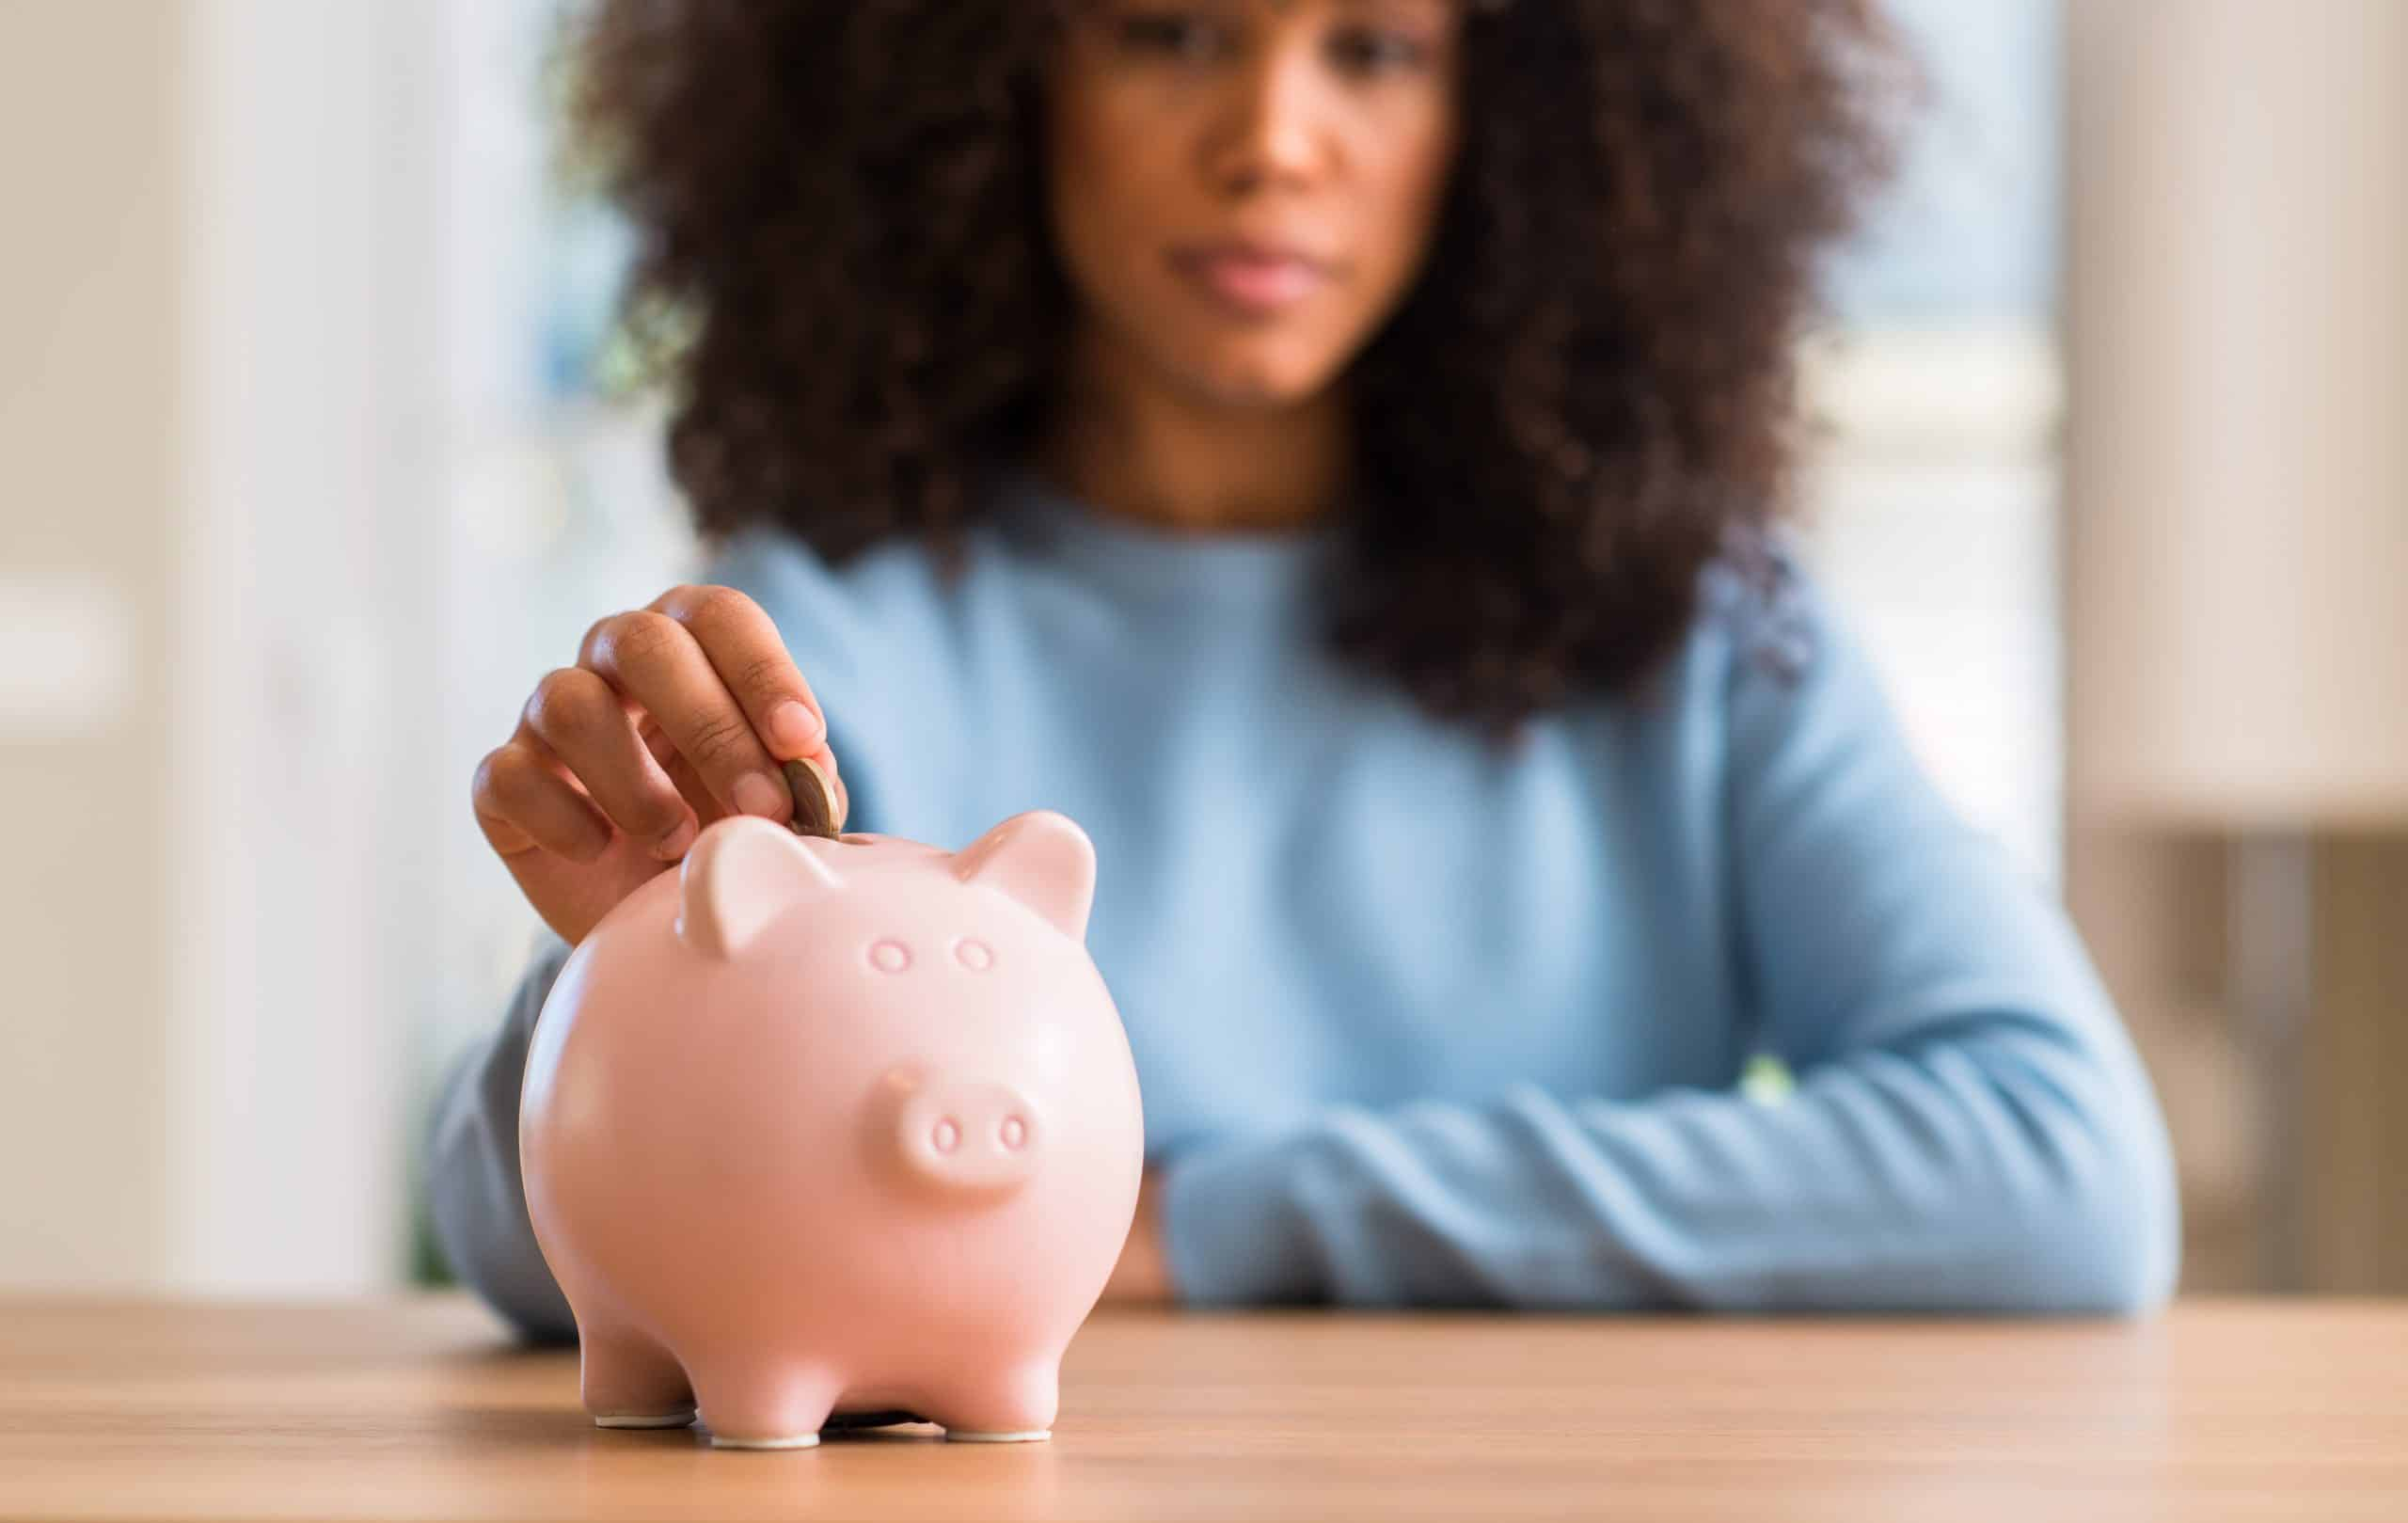 How to build an emergency fund - African american woman saves money in piggy bank with a confident expression on smart face thinking serious